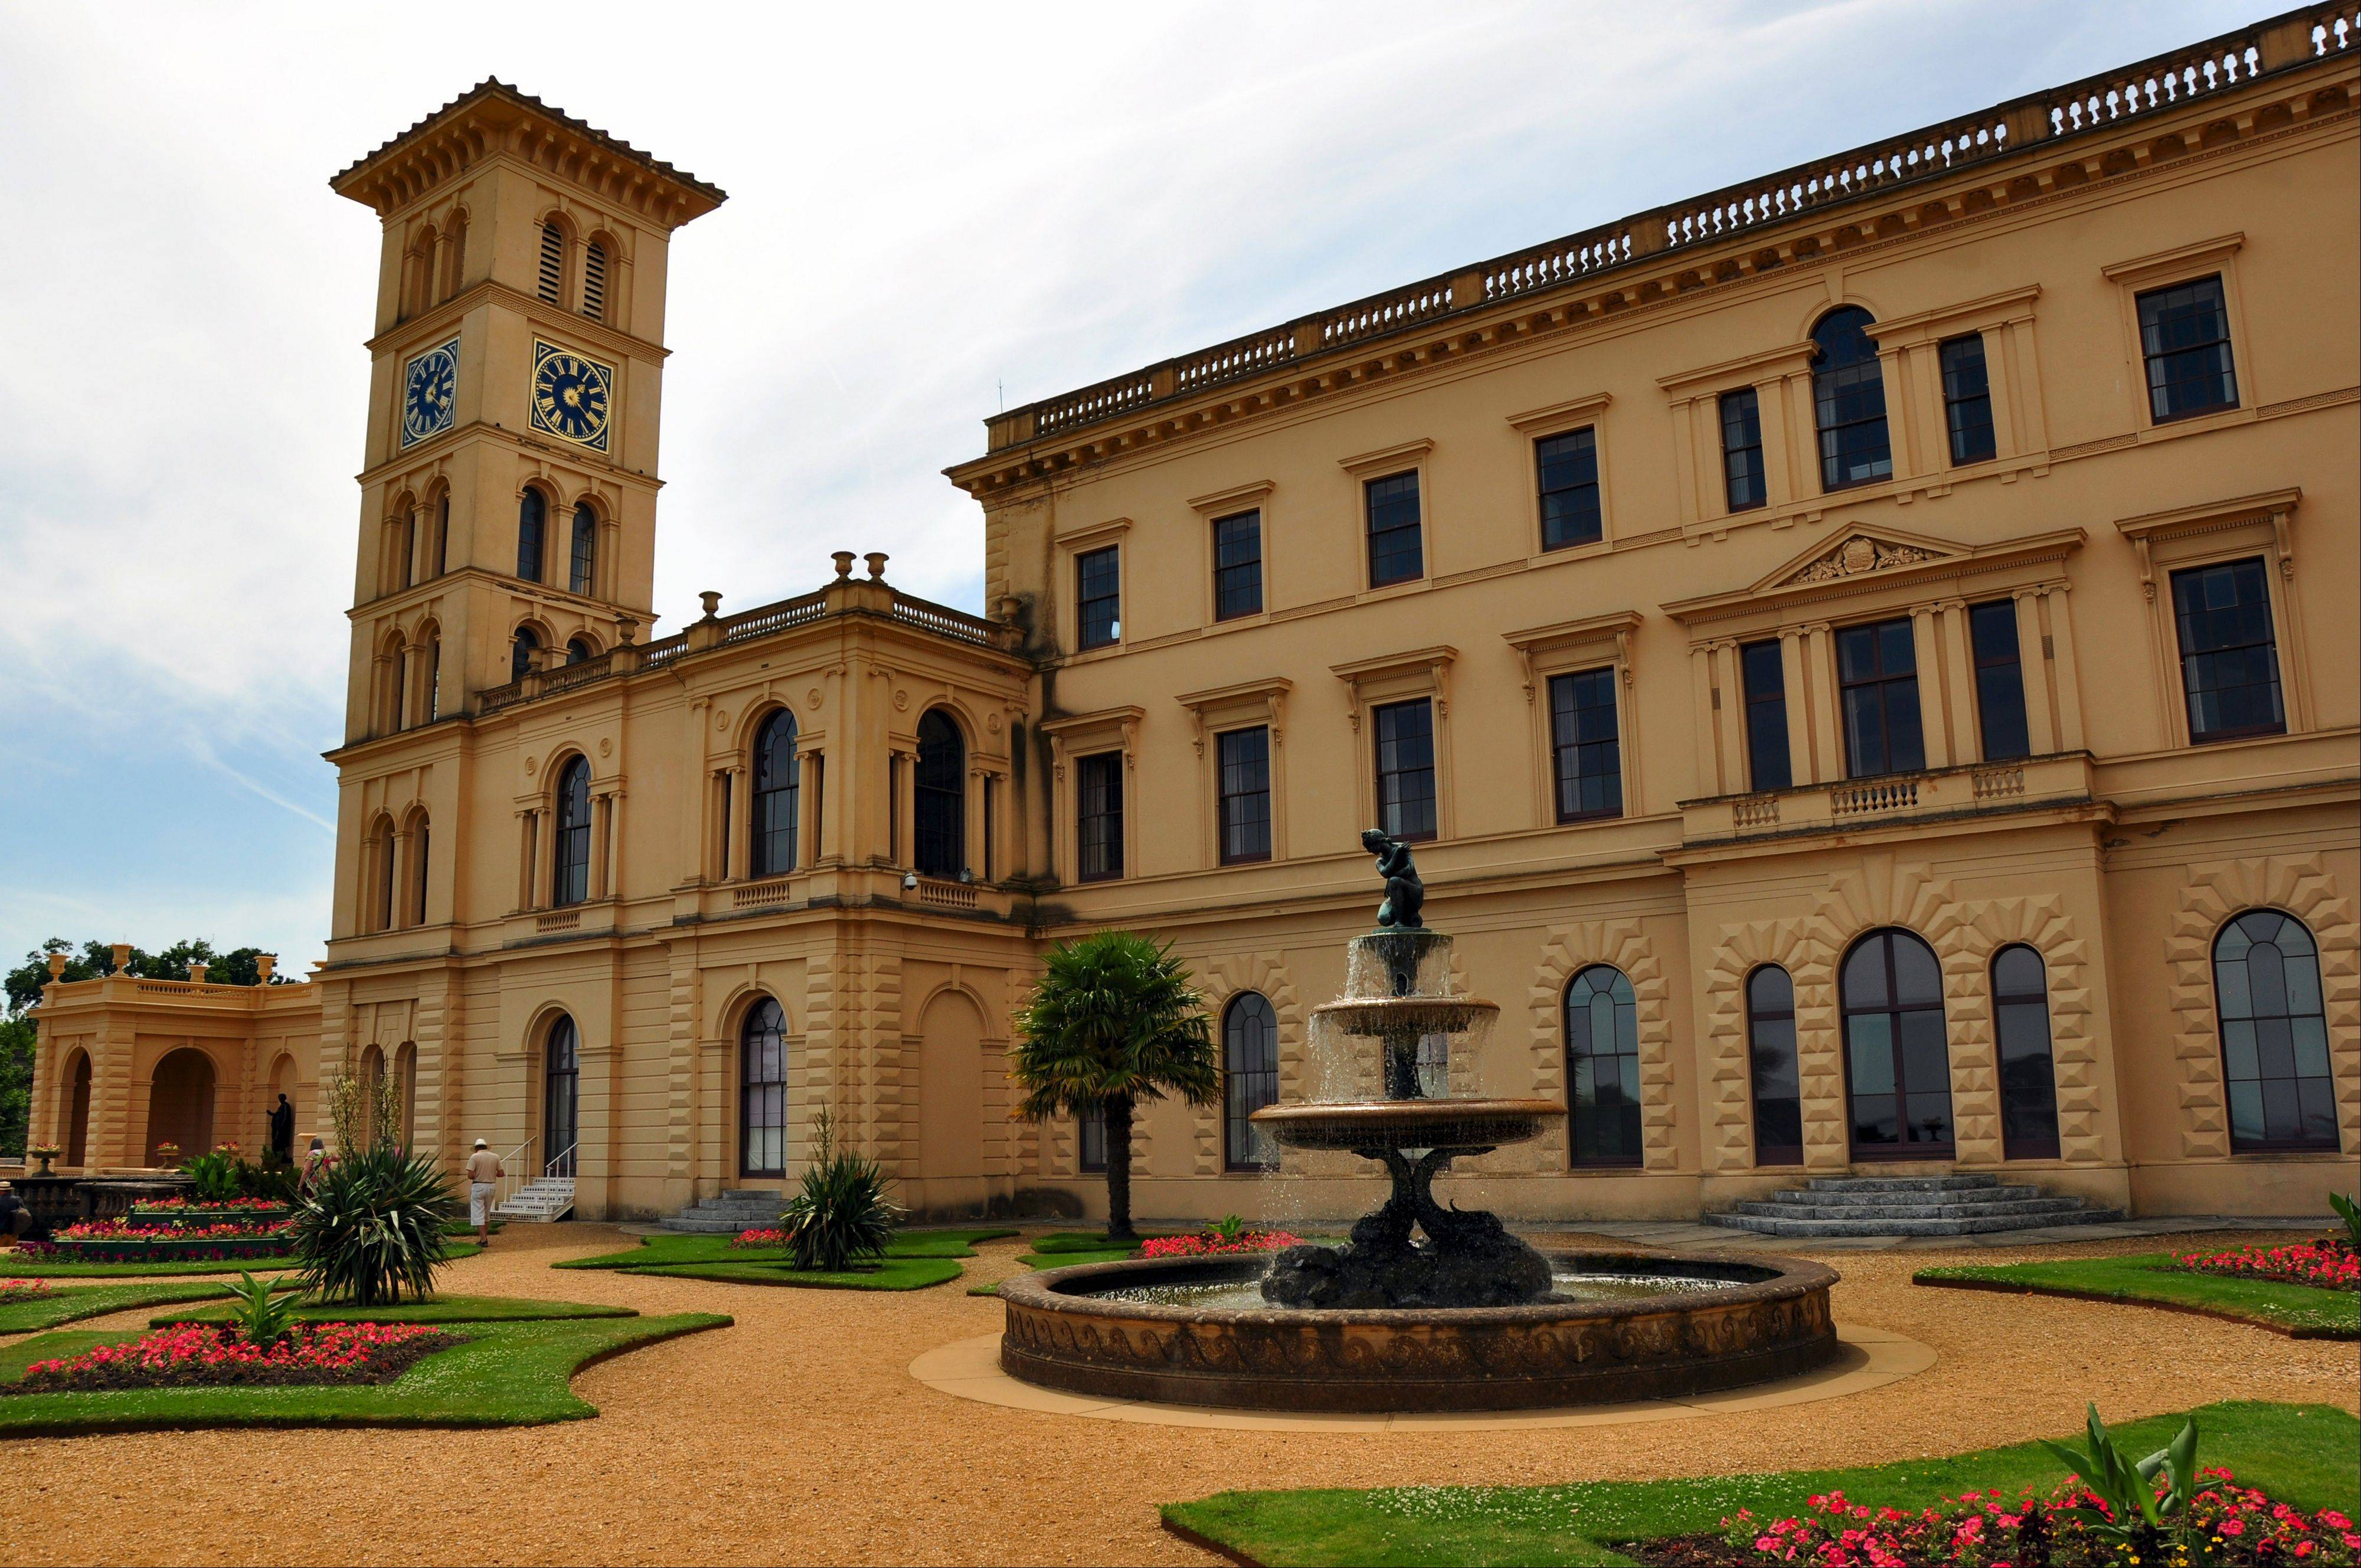 Queen Victoria and Prince Albert often escaped with their nine children for some quality family time at Osborne House on the Isle of Wight.